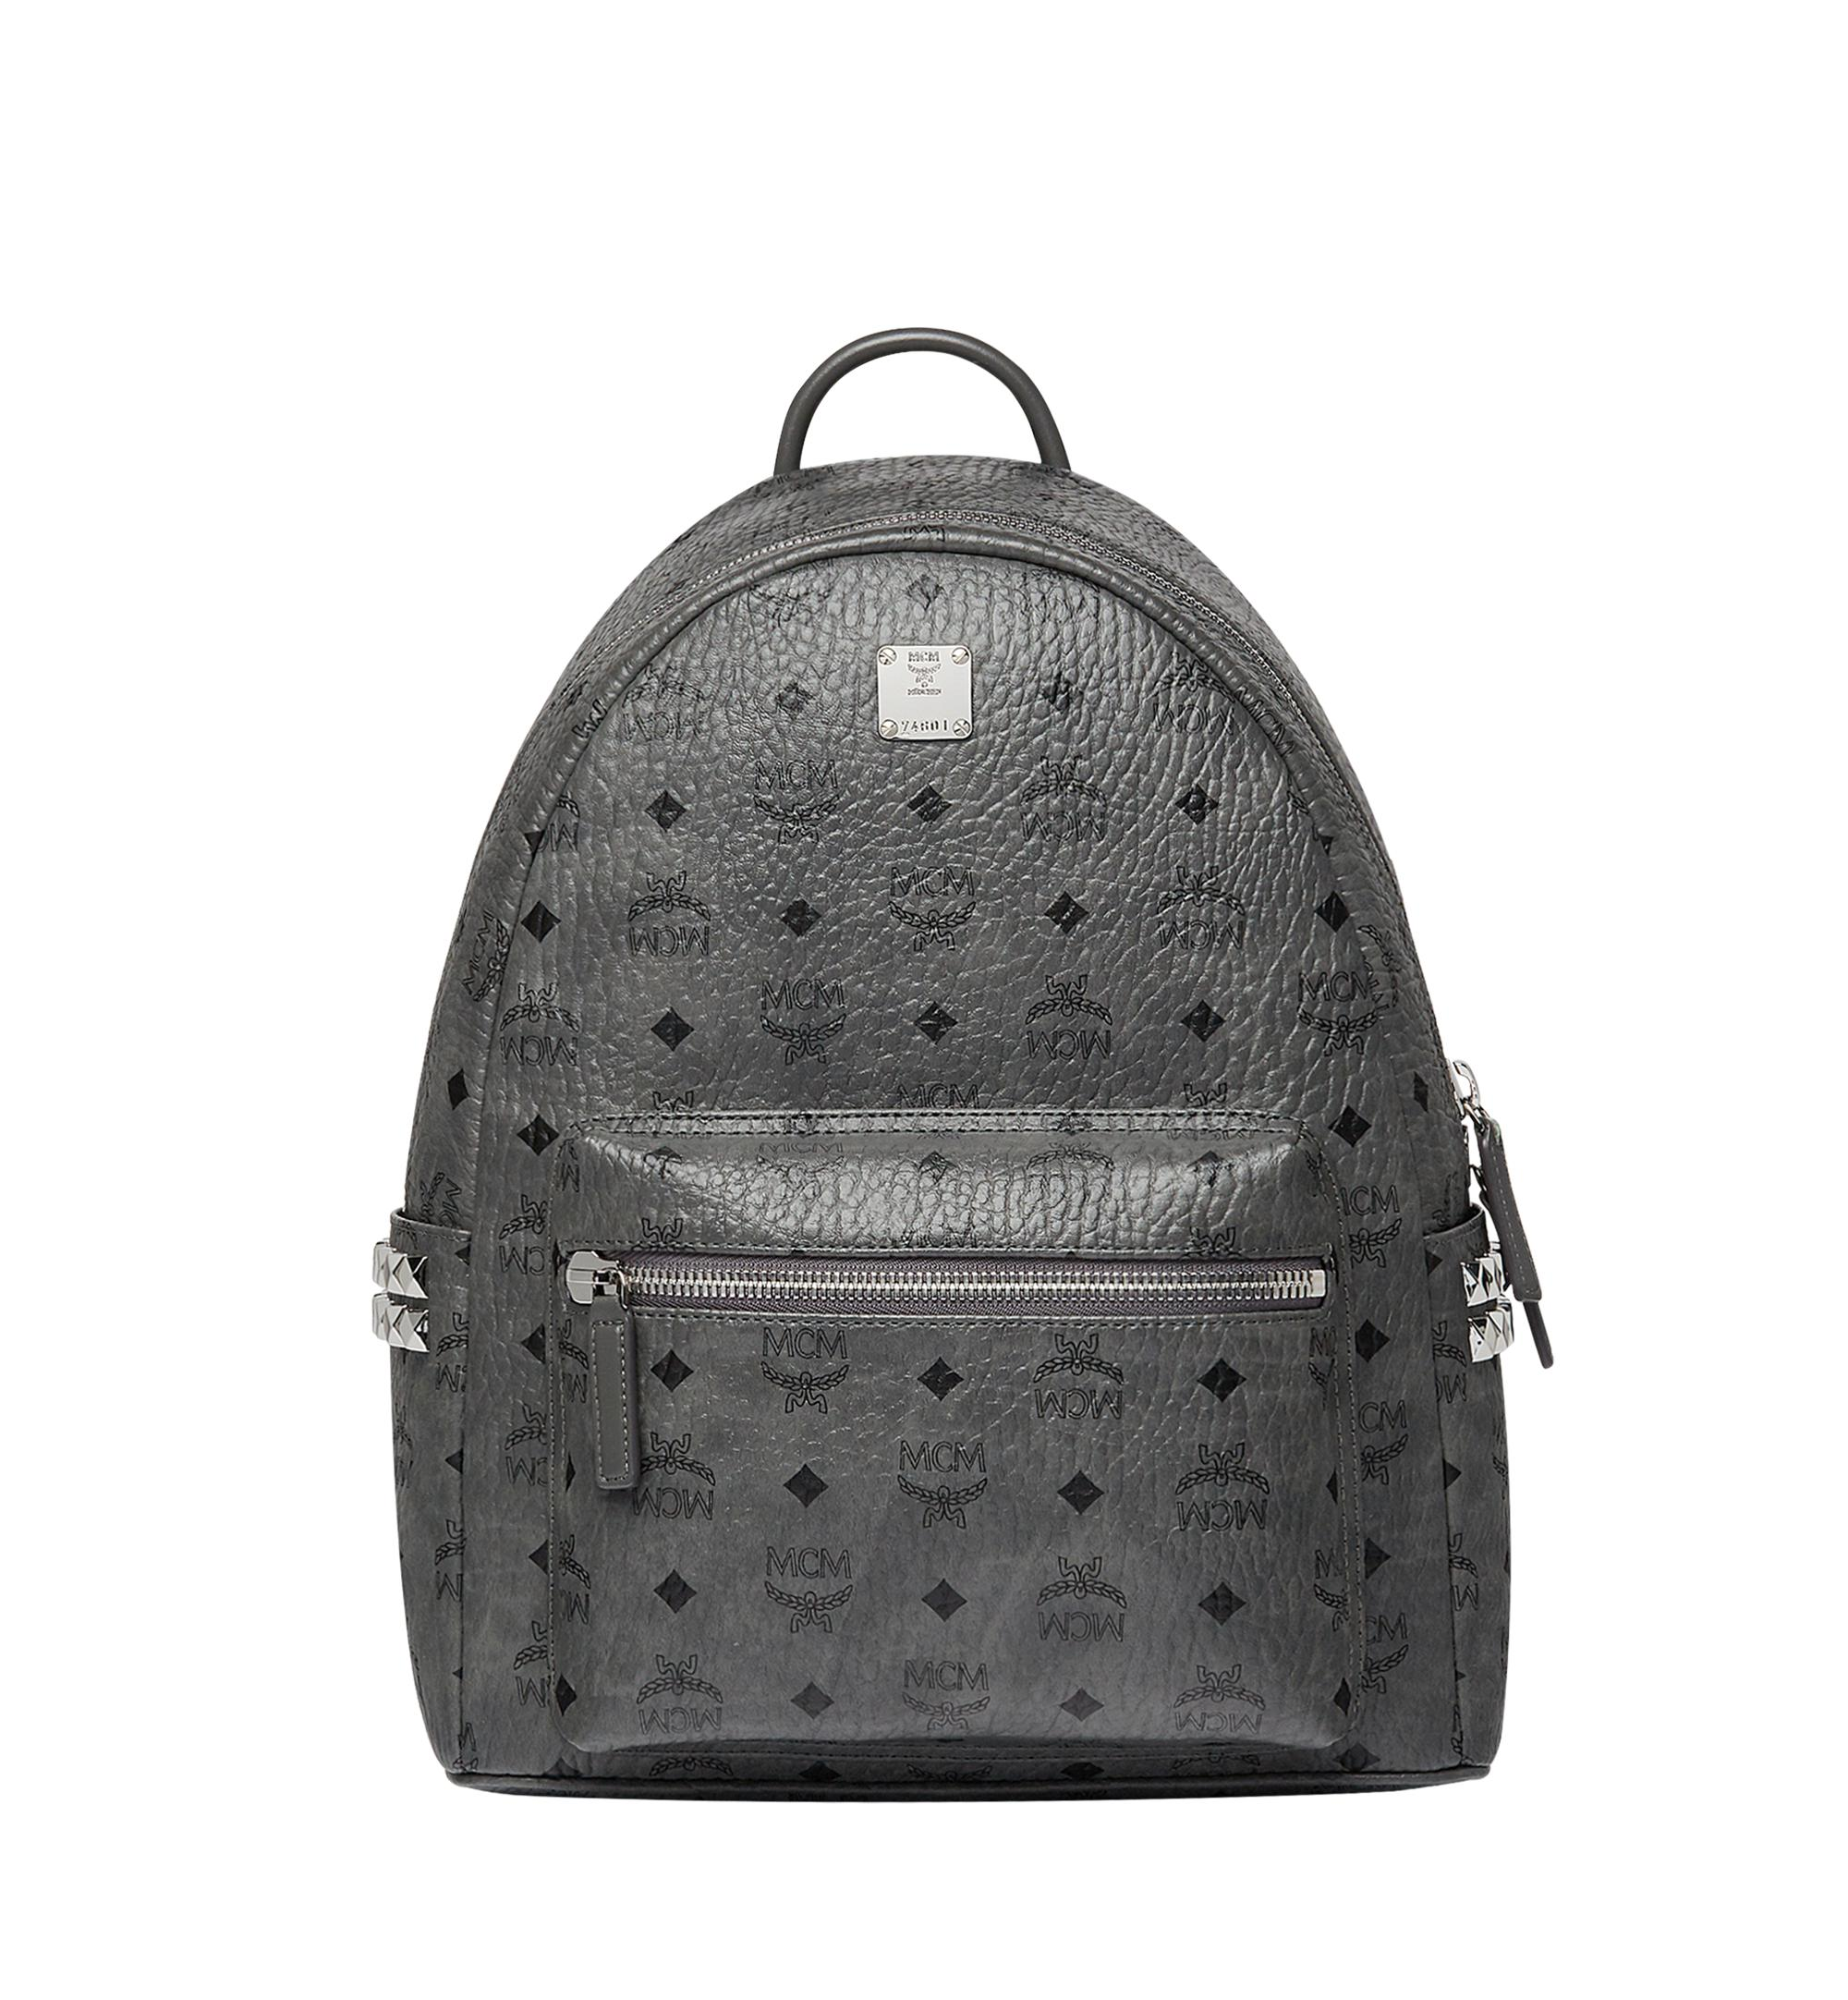 MCM Stark Medium Stud Faux Leather Backpack in Gray - Save 5% - Lyst 0adc2c80e9